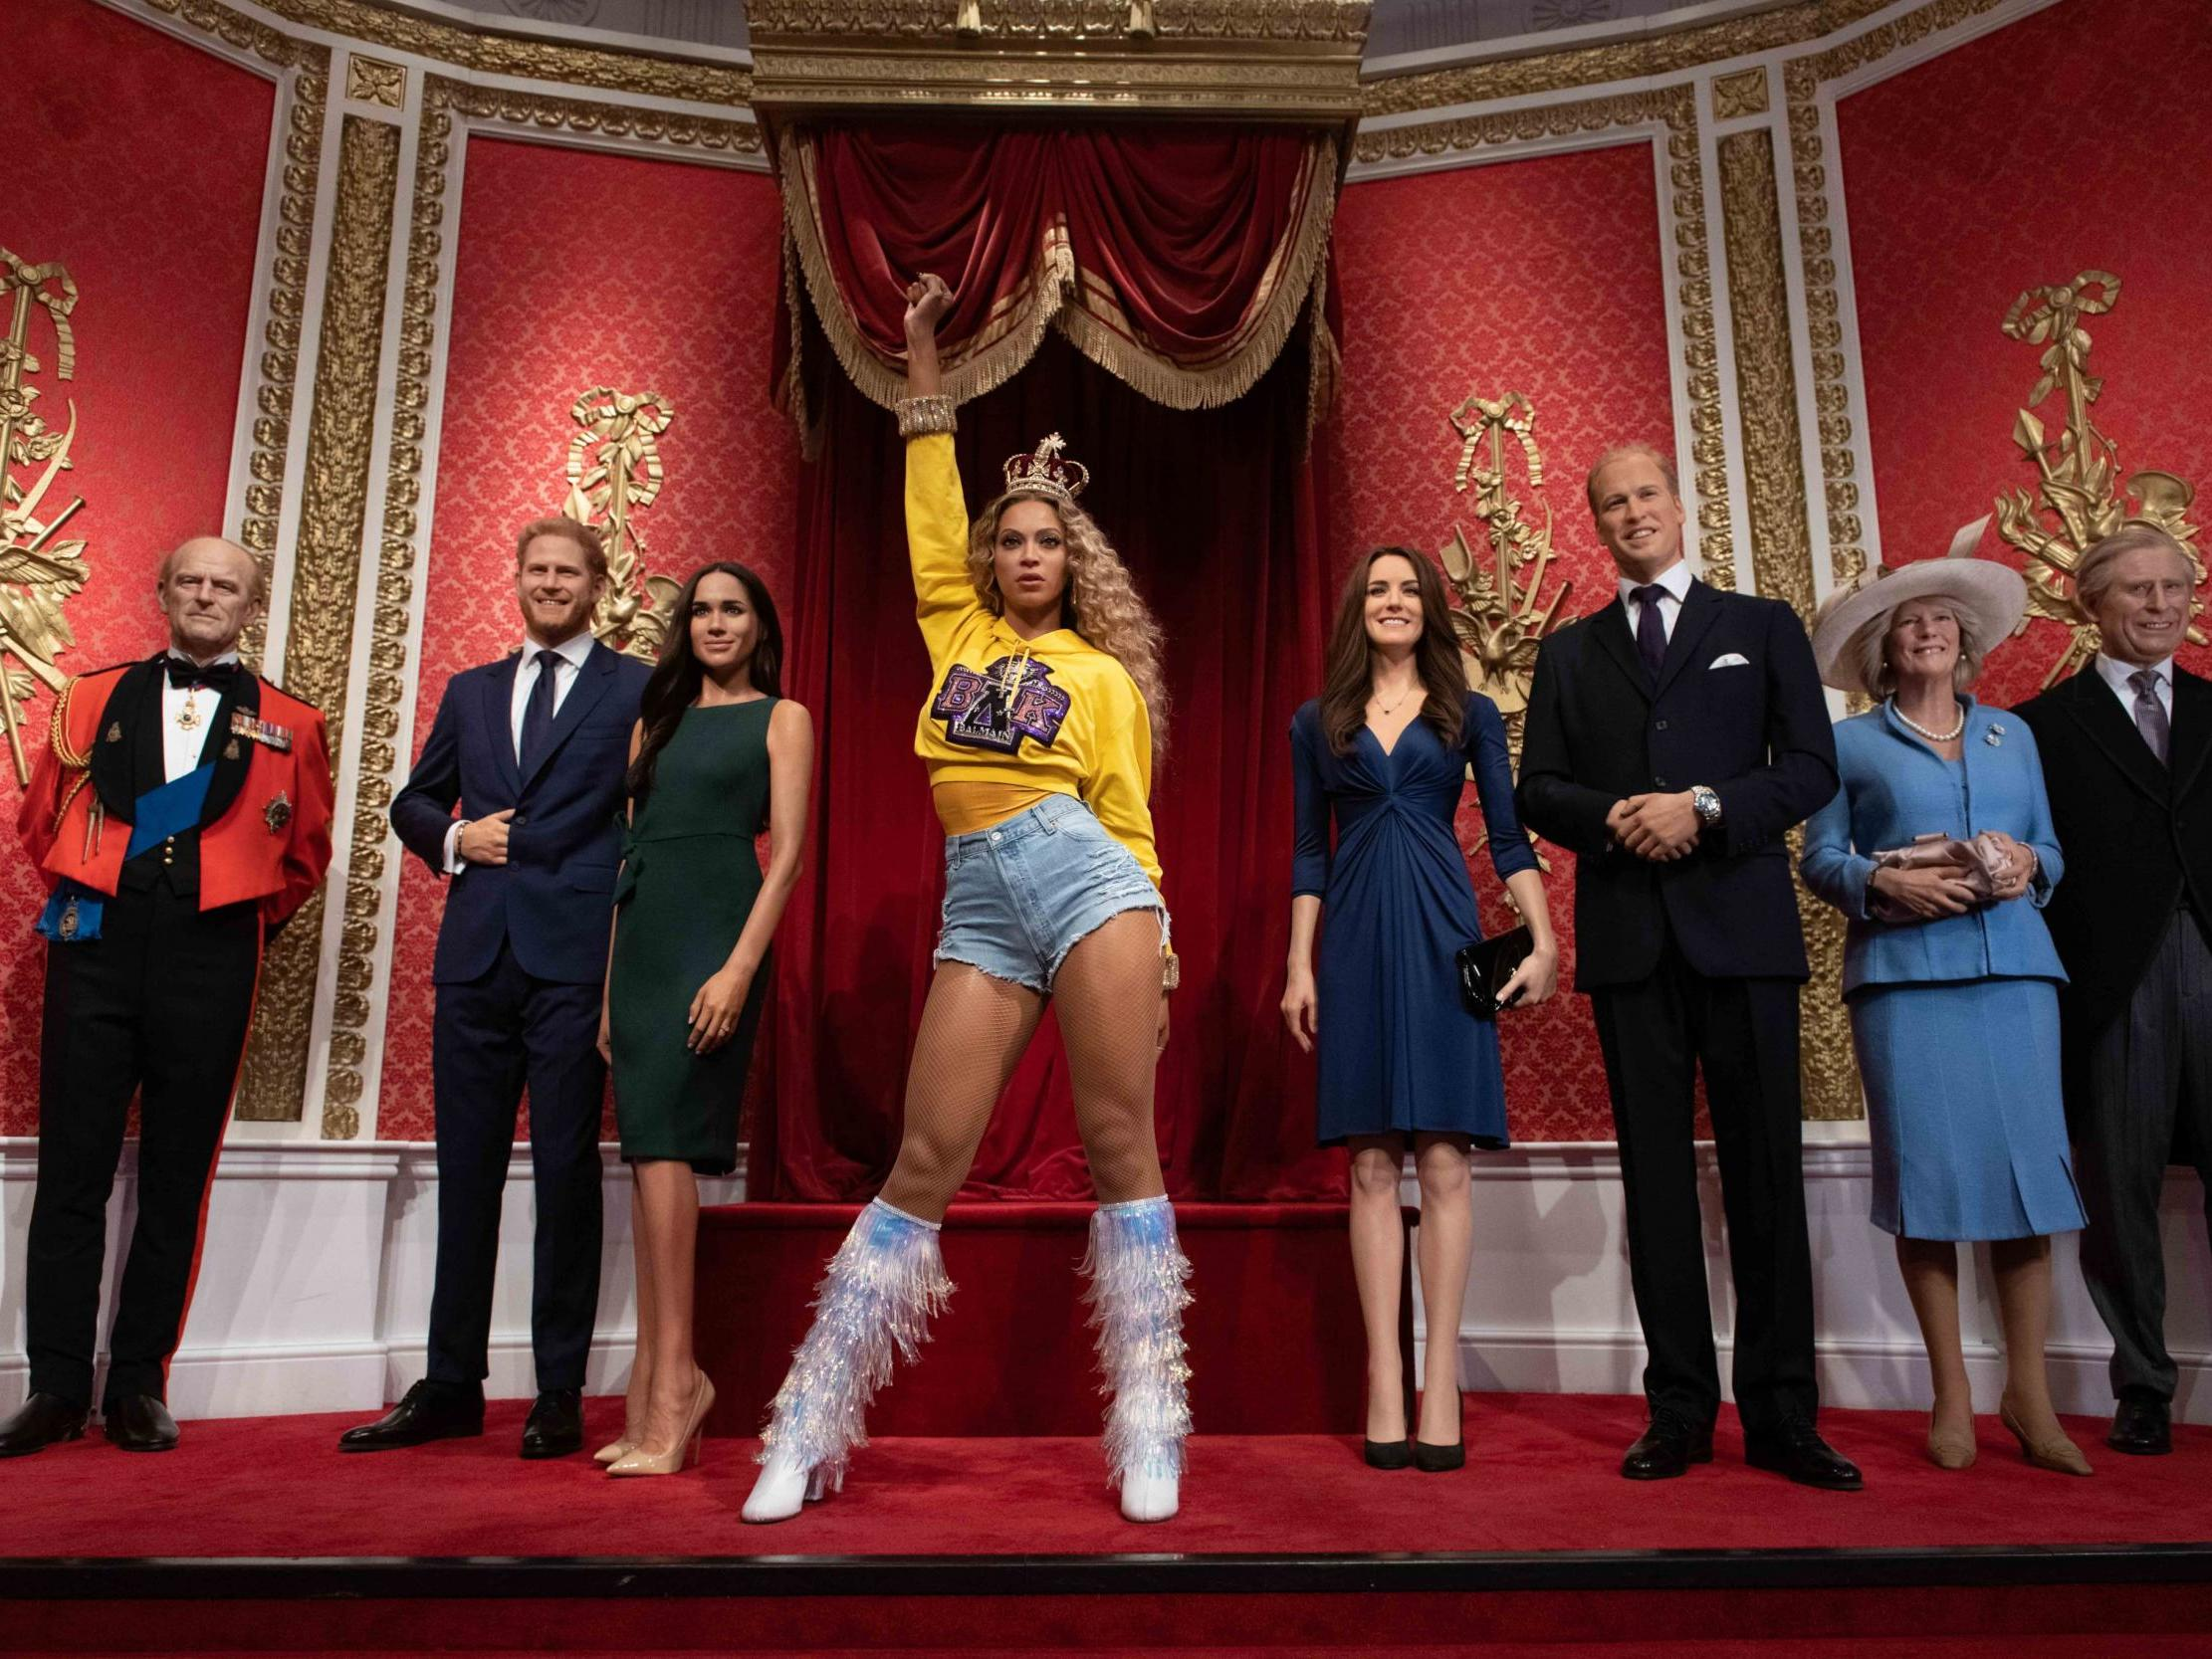 Beyoncé waxwork unveiled next to royal family at Madame Tussauds as 'official music royalty'